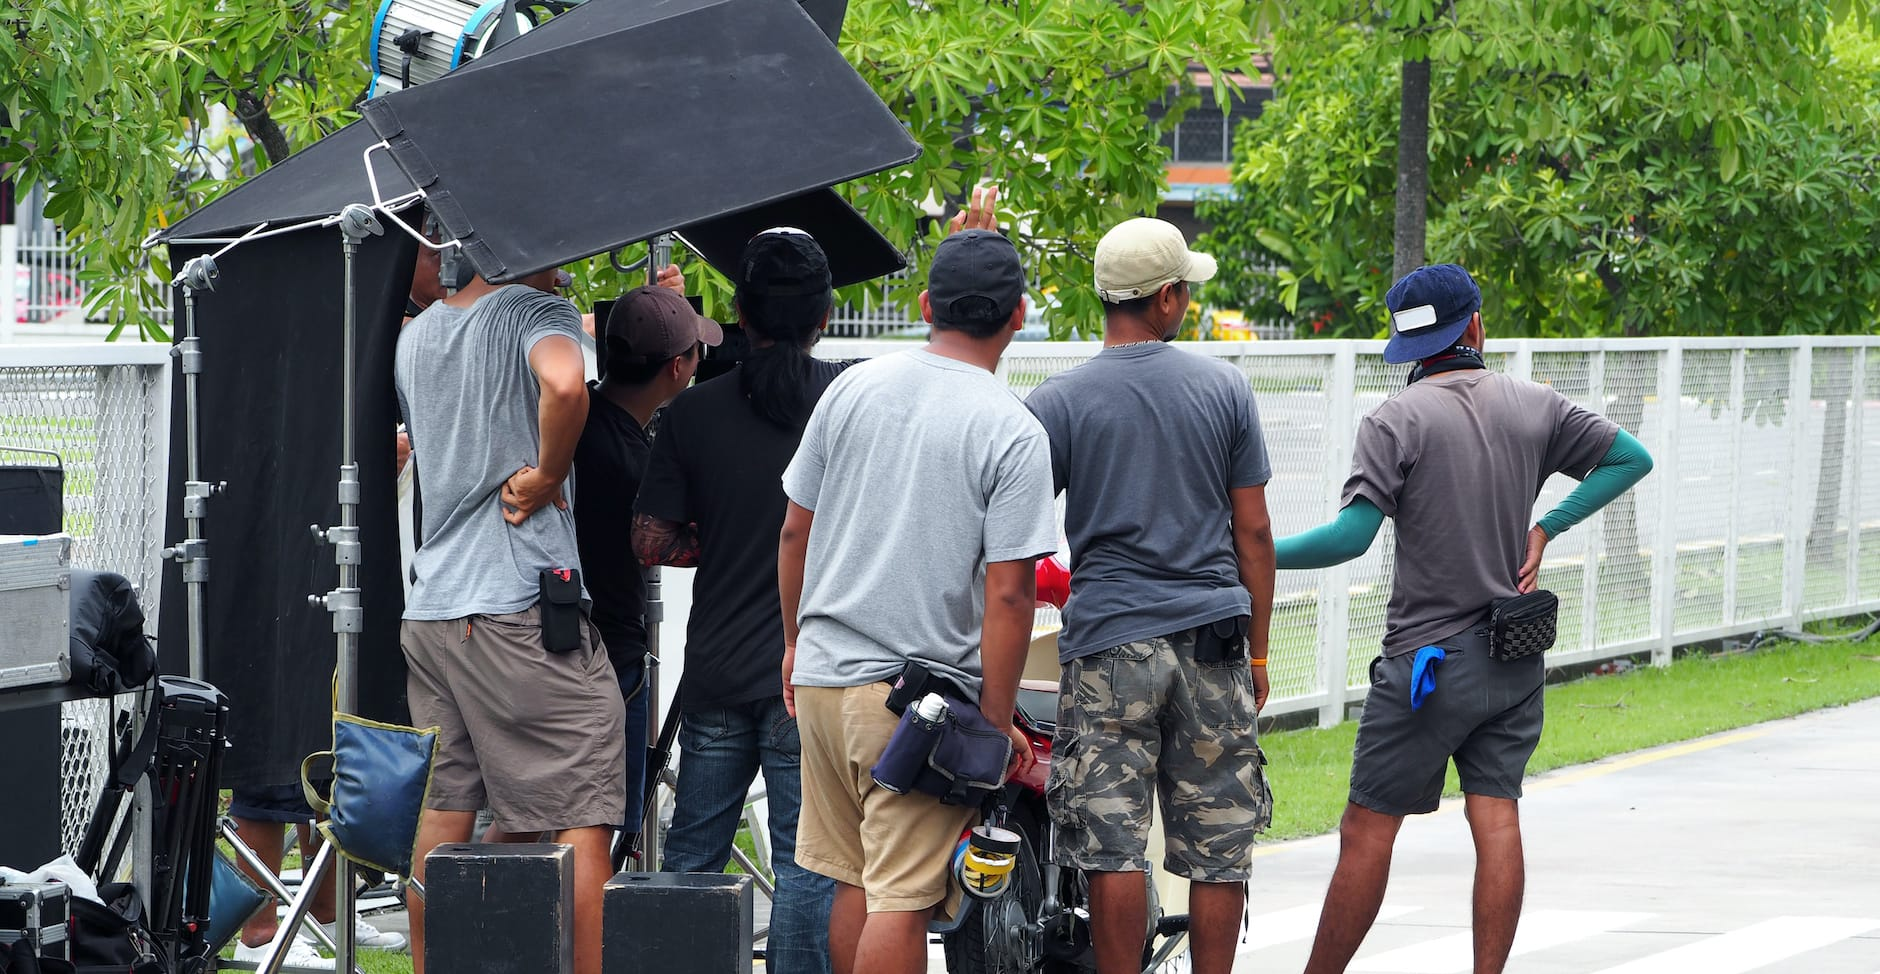 People filming on location in neighborhood.